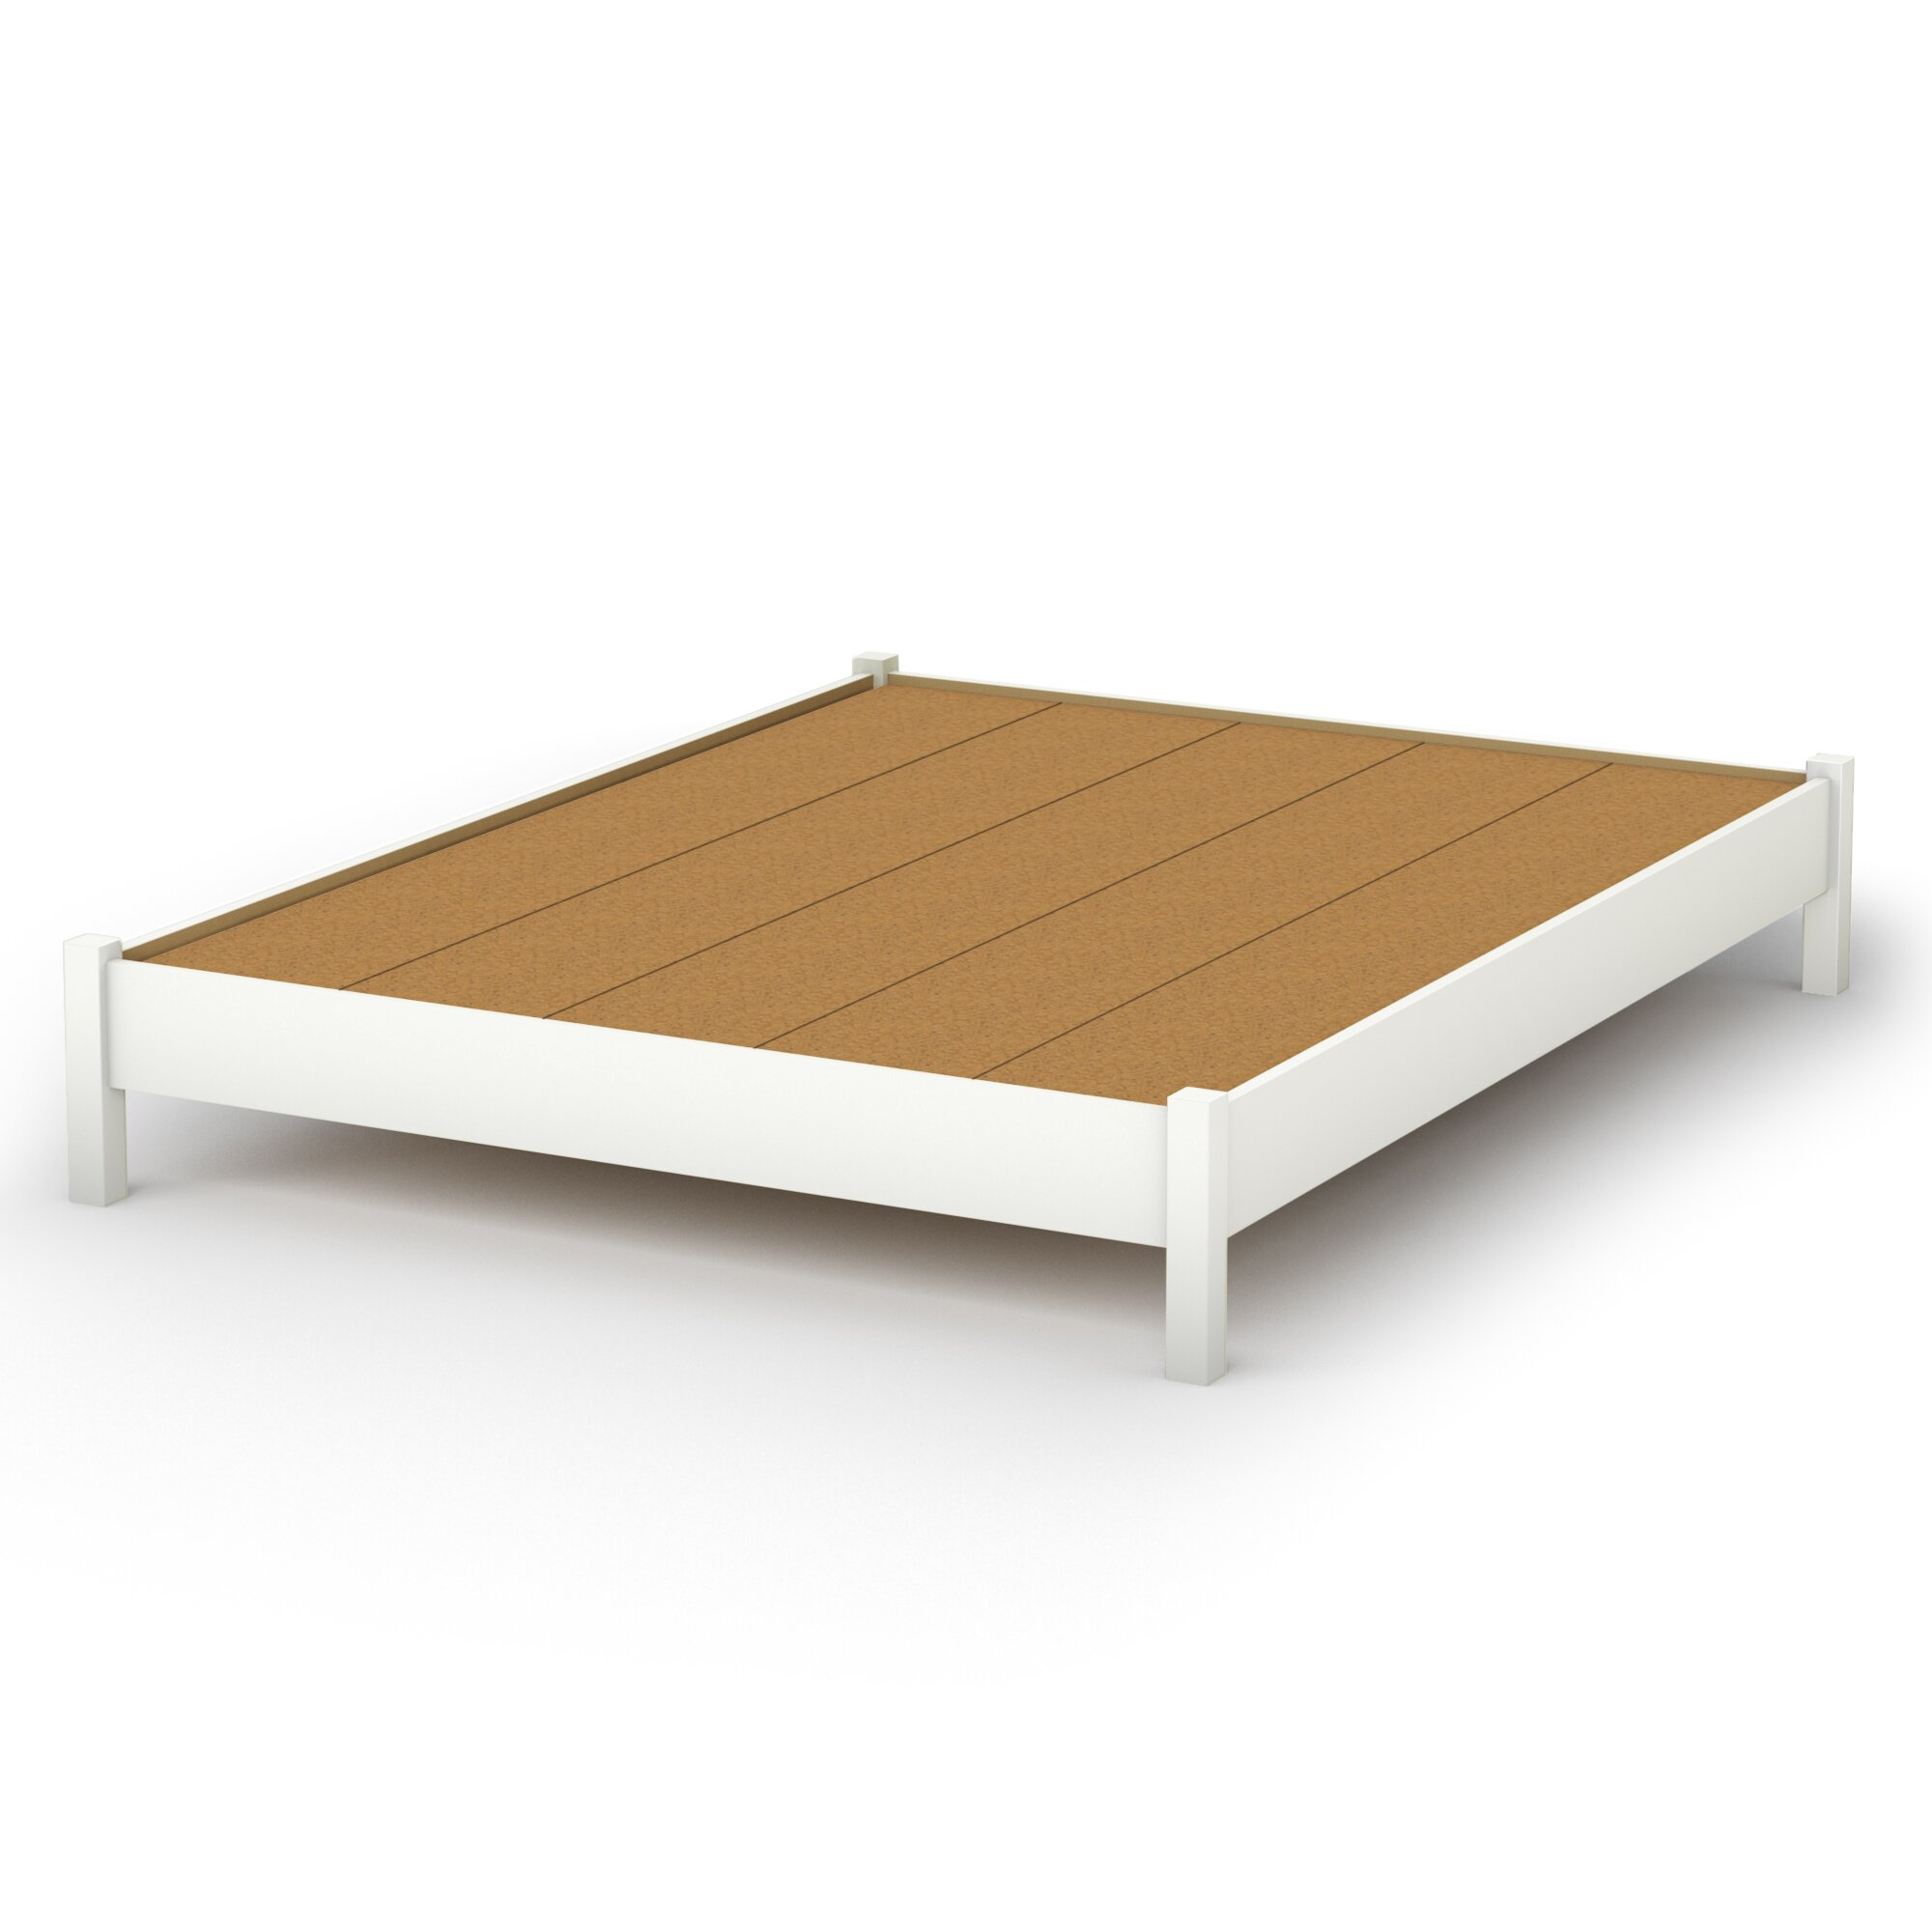 How To Make A Wooden Bed Base